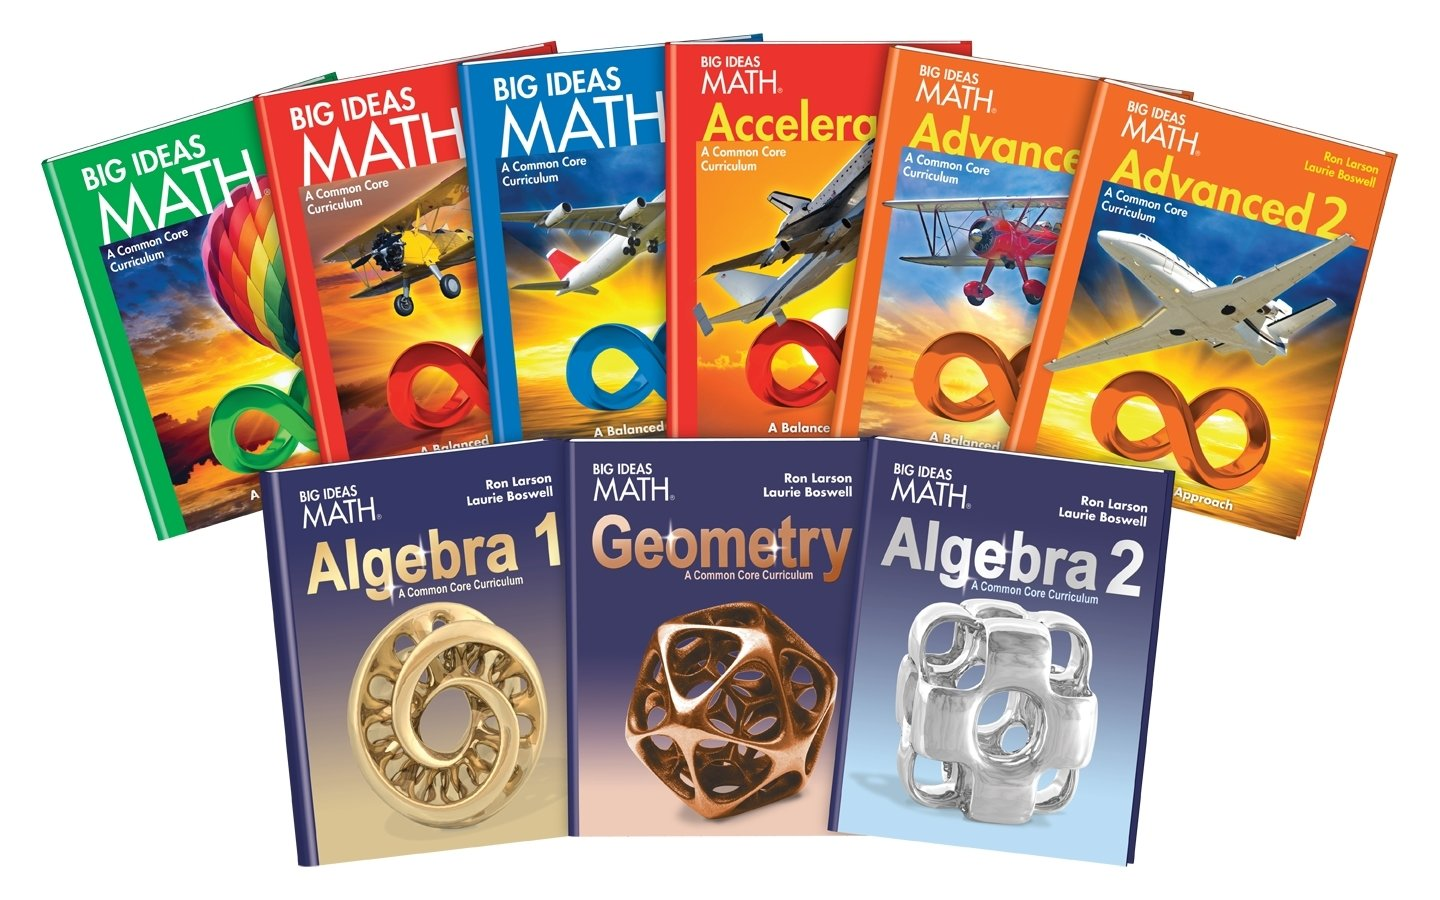 10 Perfect Big Ideas Math Common Core big ideas learning llc announces release of new common core high 2020